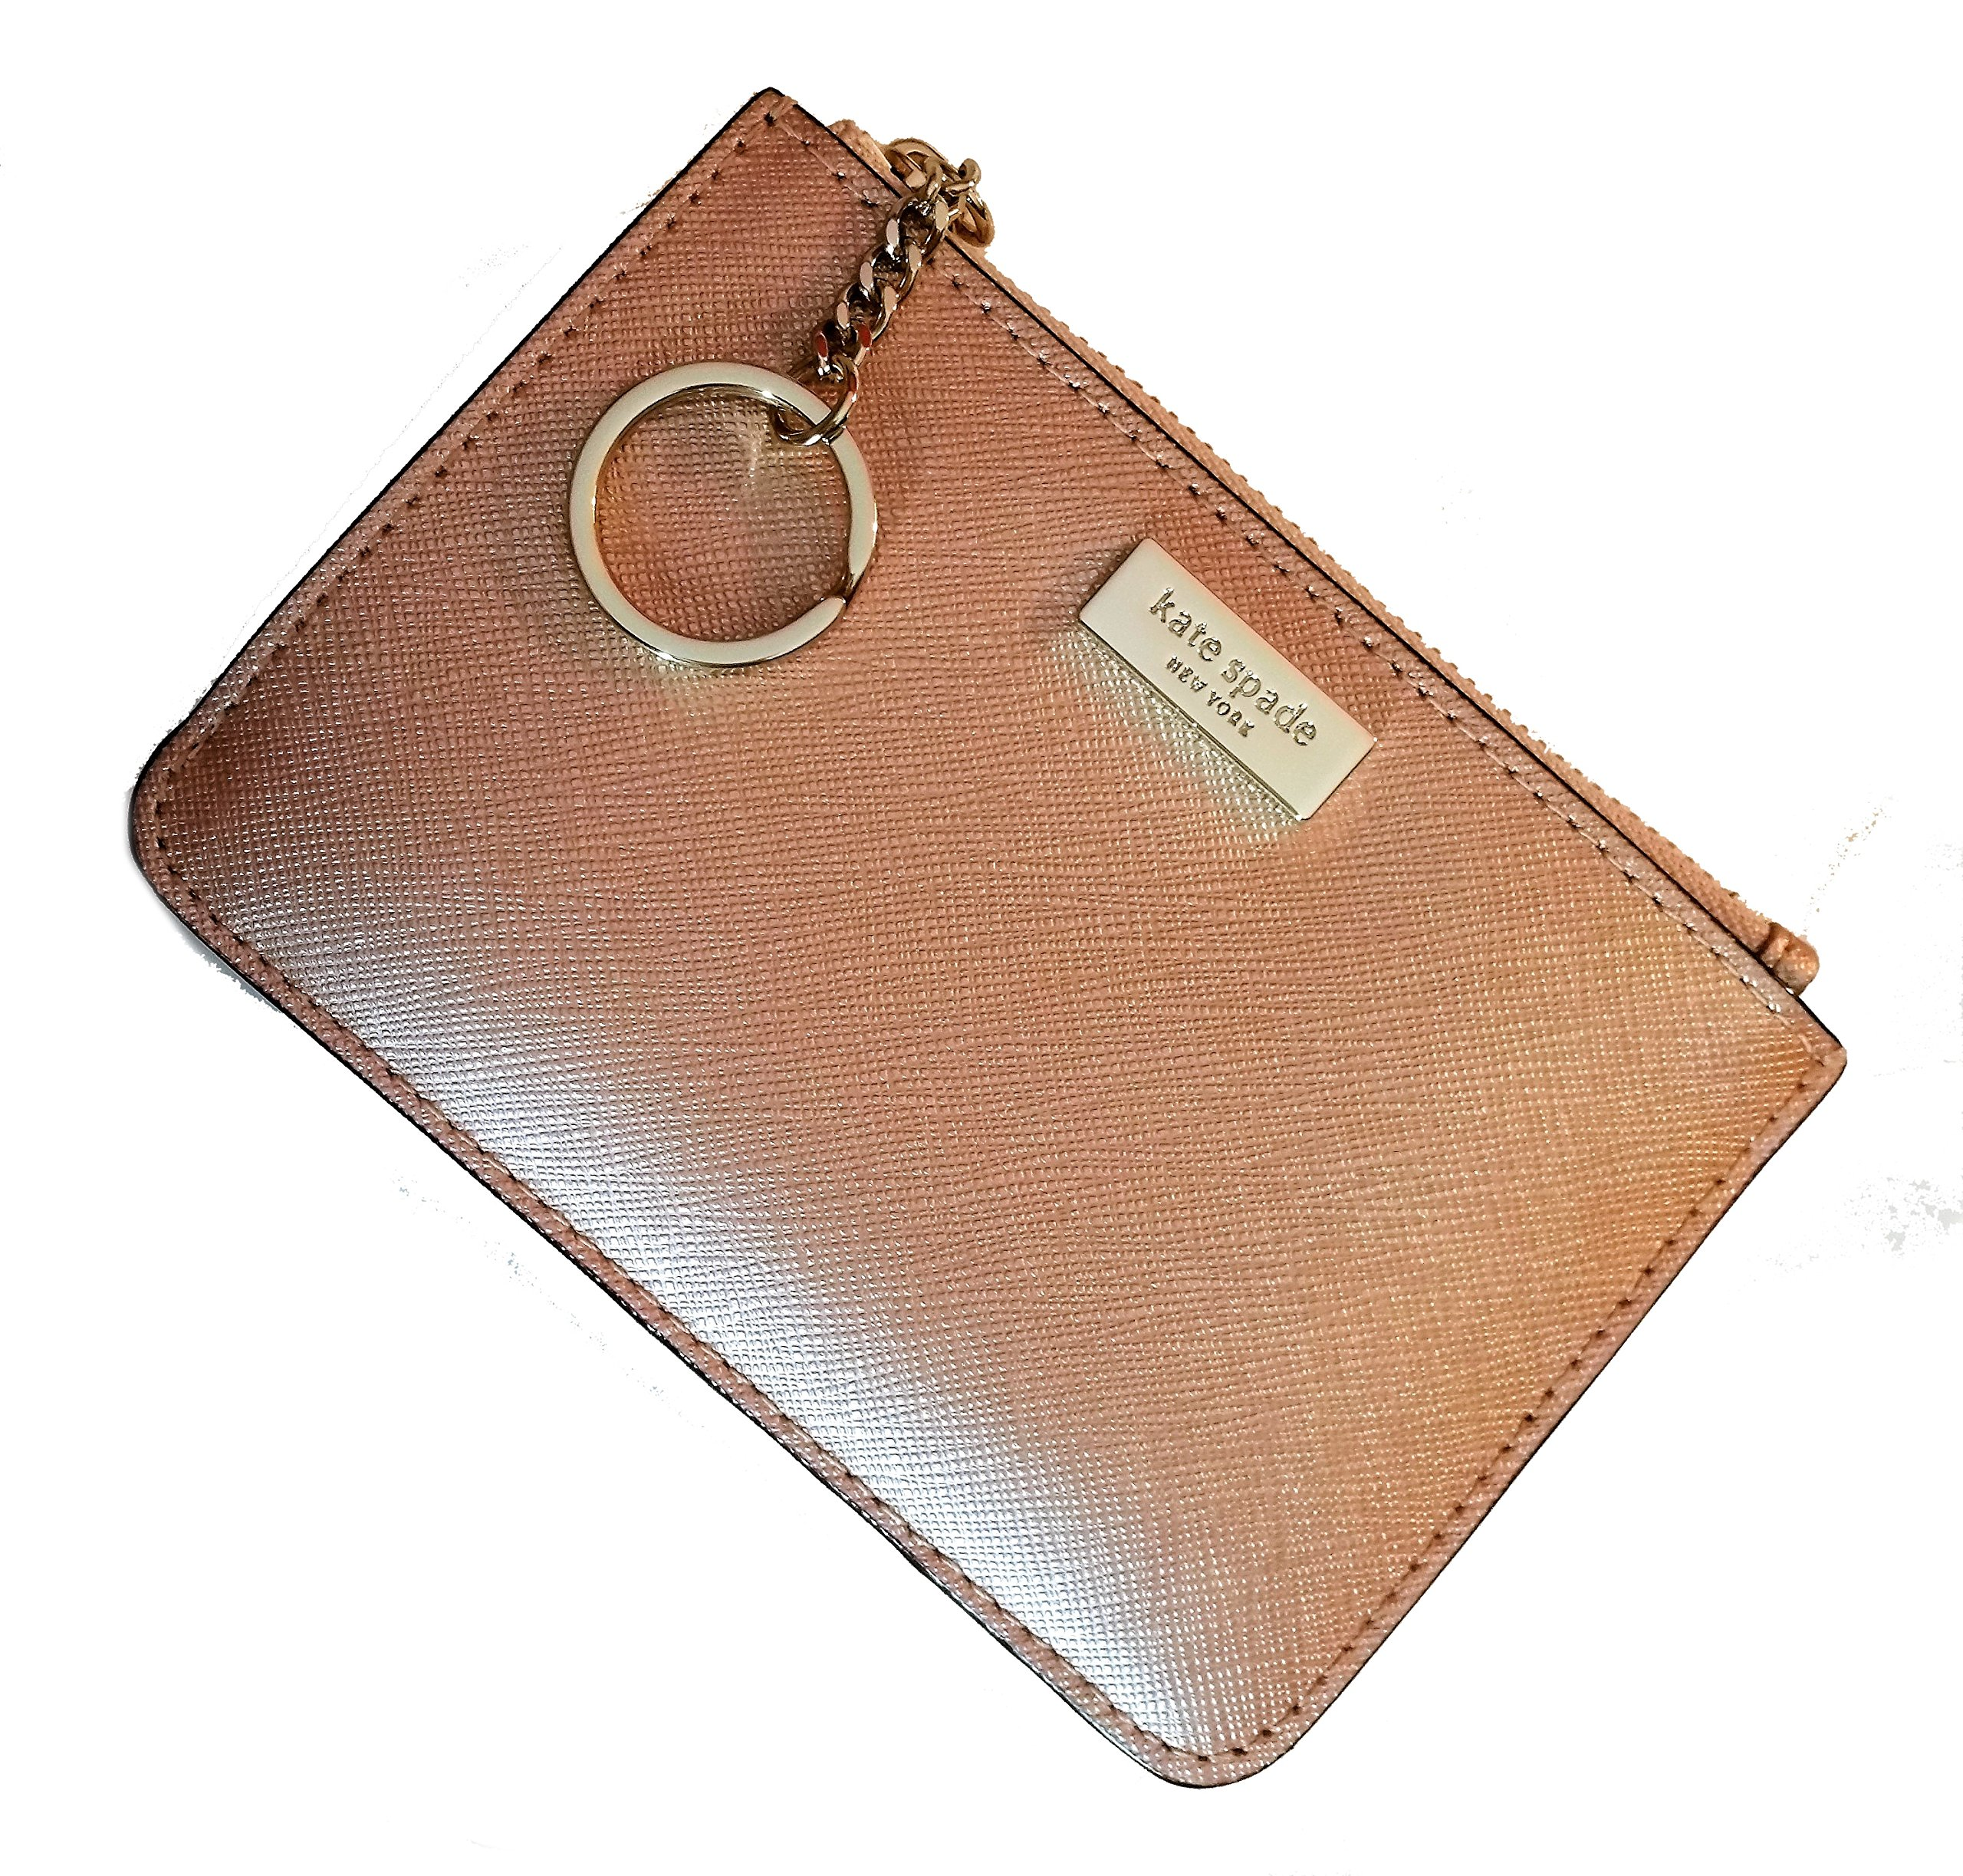 Kate Spade New York Laurel Way Bitsy Card Case W/ Keyring Rosegold by Kate Spade New York (Image #4)